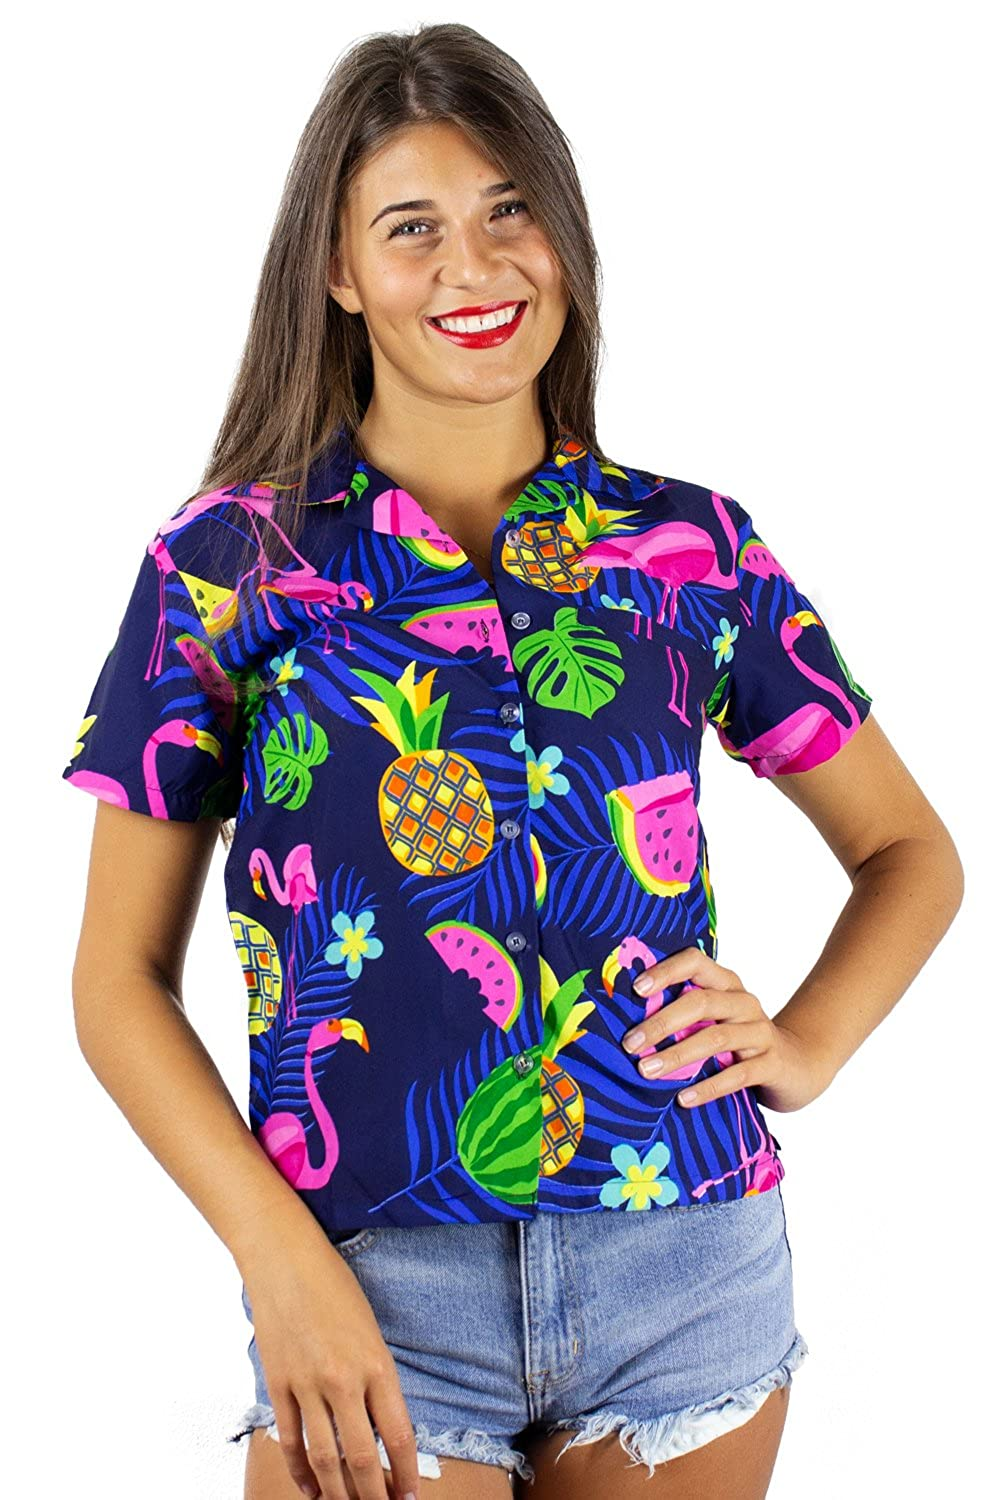 bluee King Kameha Funky Hawaiian Shirt Blouse Women Shortsleeve Frontpocket HawaiianPrint Melon Flamingo Fruits